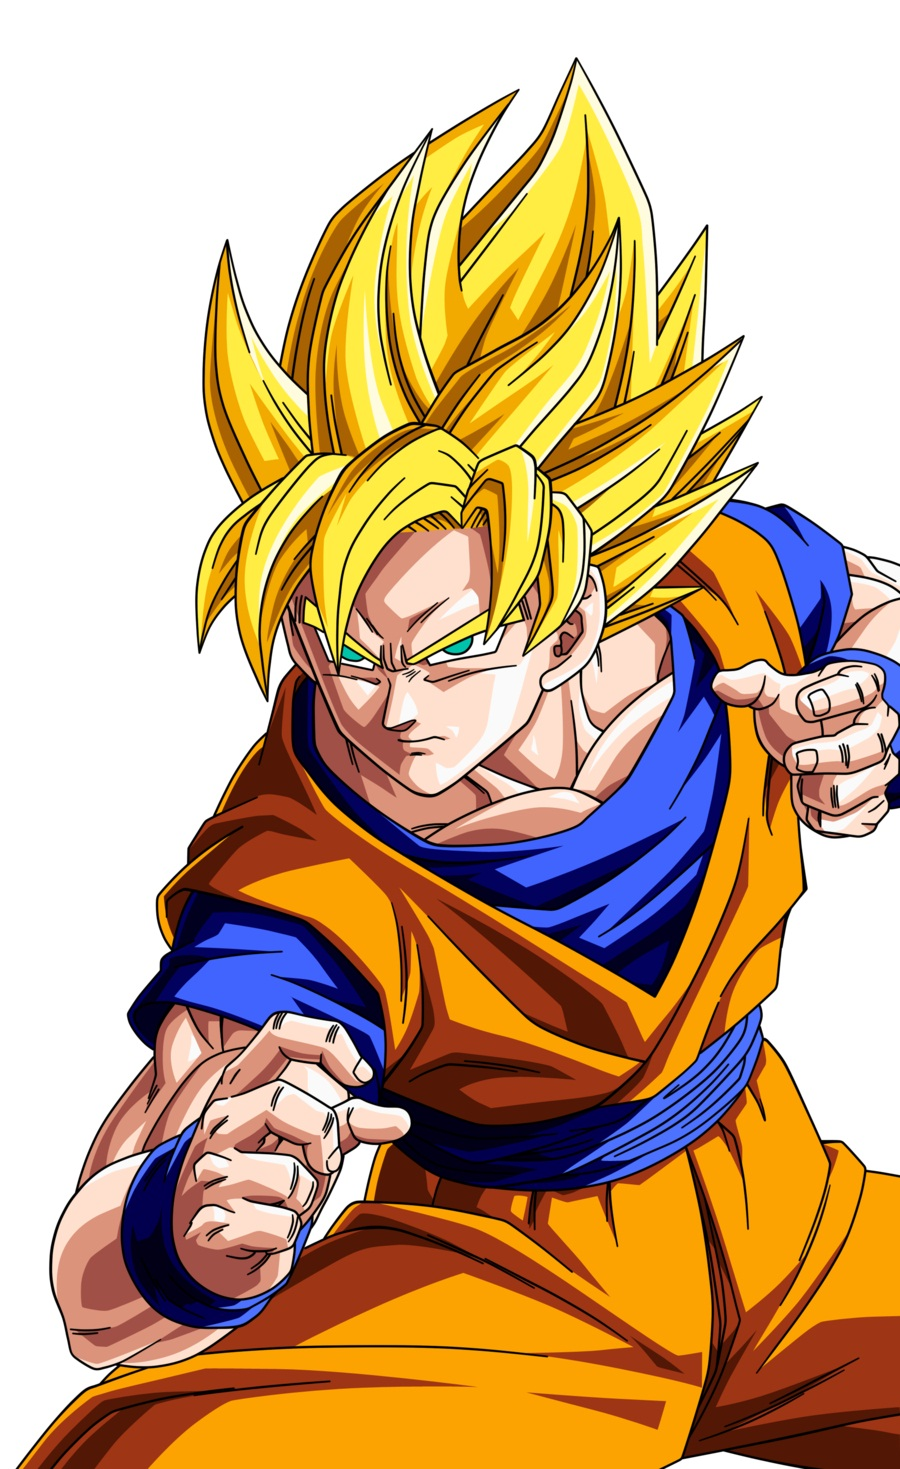 Son goku dragon ball image 1622796 zerochan anime - Dragon ball z goku son ...